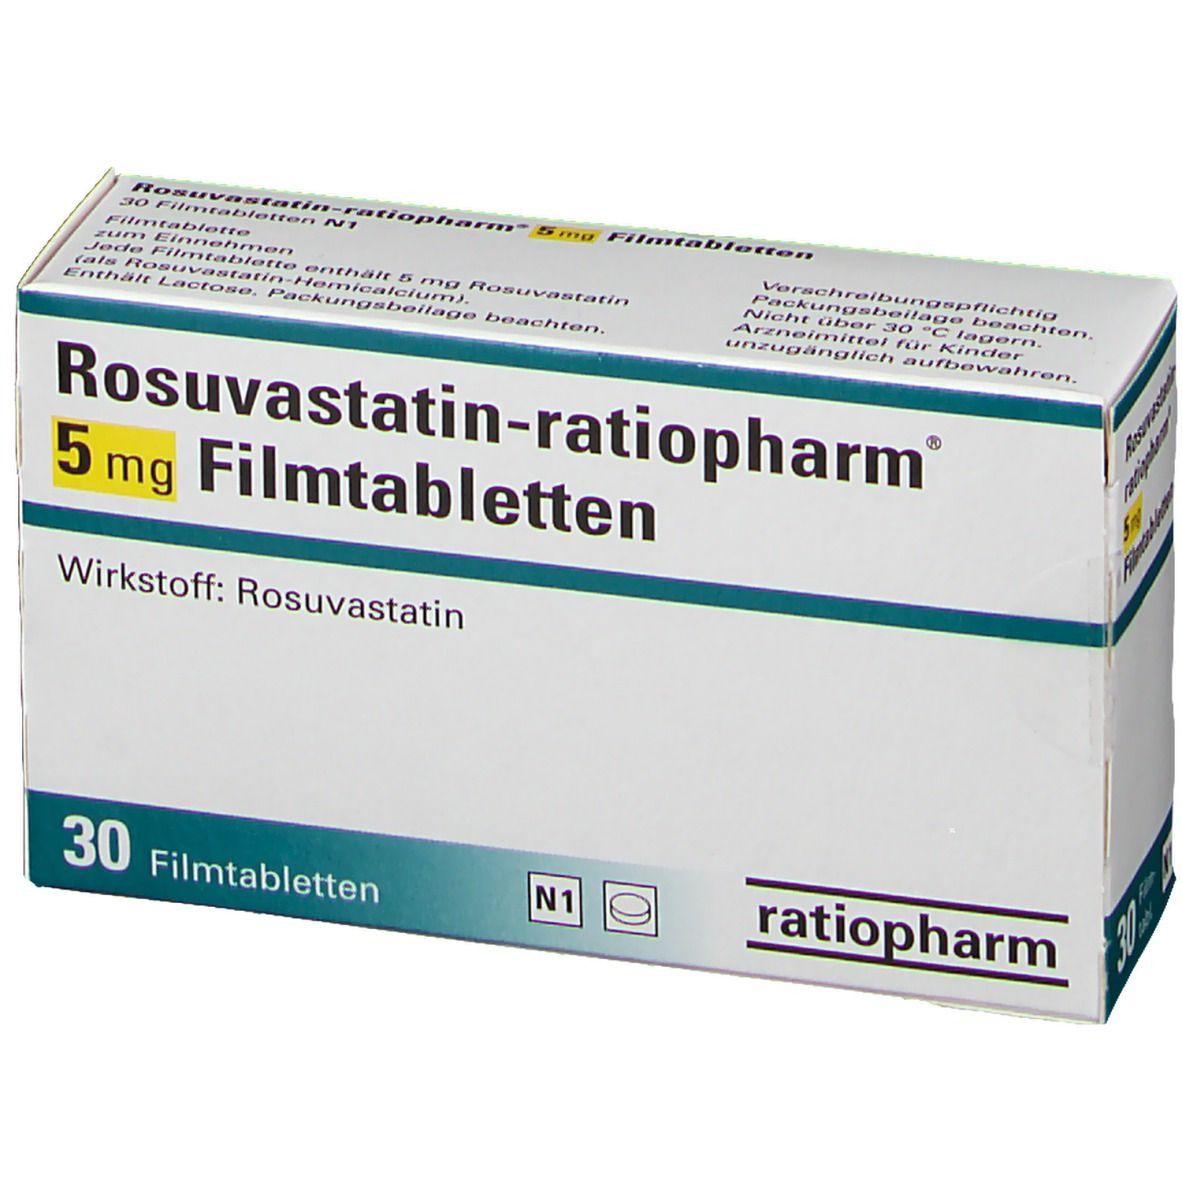 Ivermectin for humans where to buy